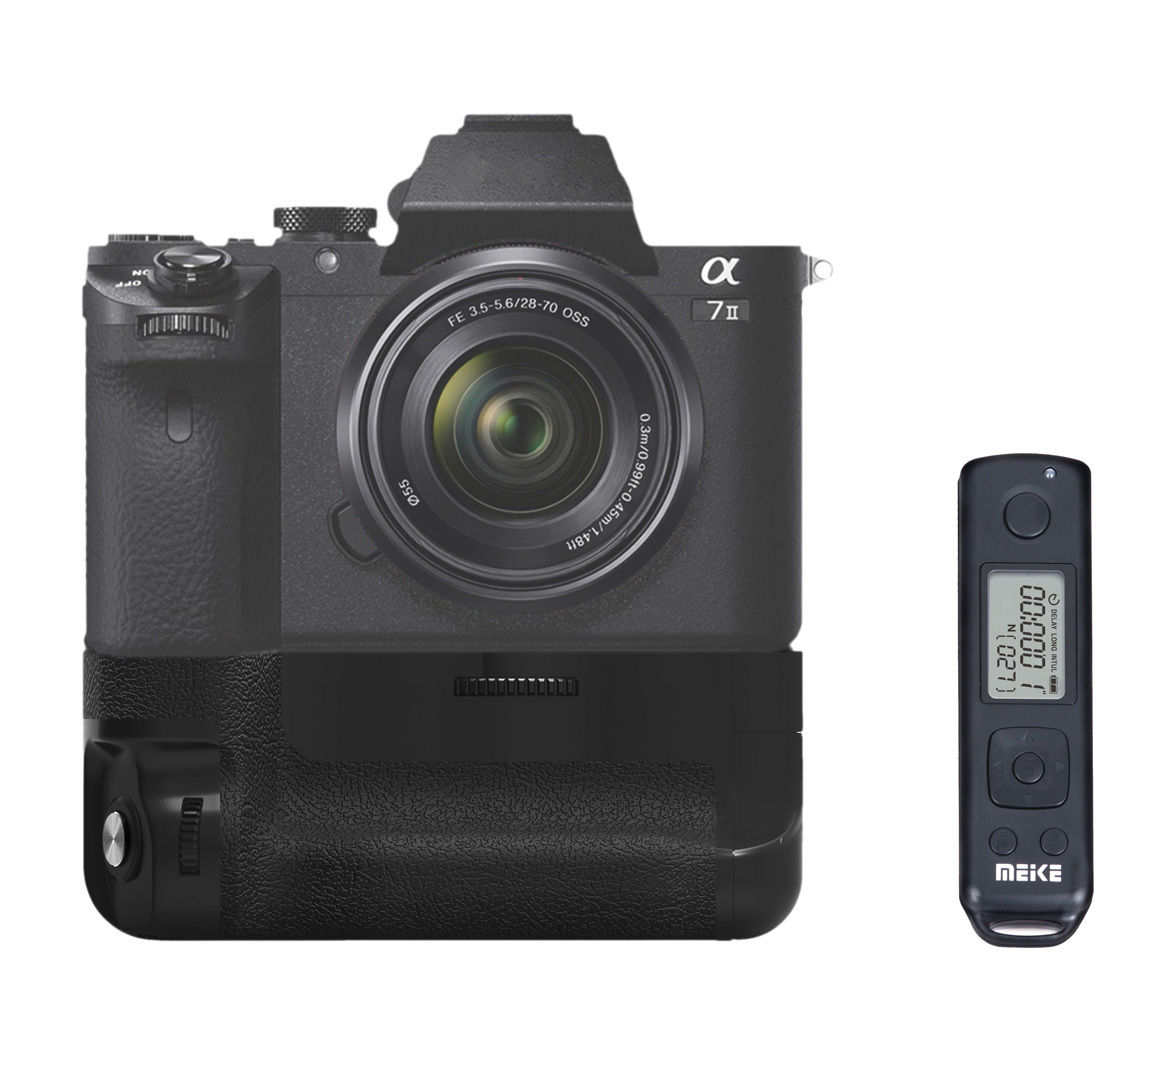 Meike MK-A7II Pro Built-in Wireless Control Battery Grip for Sony A7 II A7R II A7S II as for Sony VG-C2EM meike mk d500 pro vertical battery grip built in 2 4ghz fsk remote control shooting for nikon d500 camera as mb d17